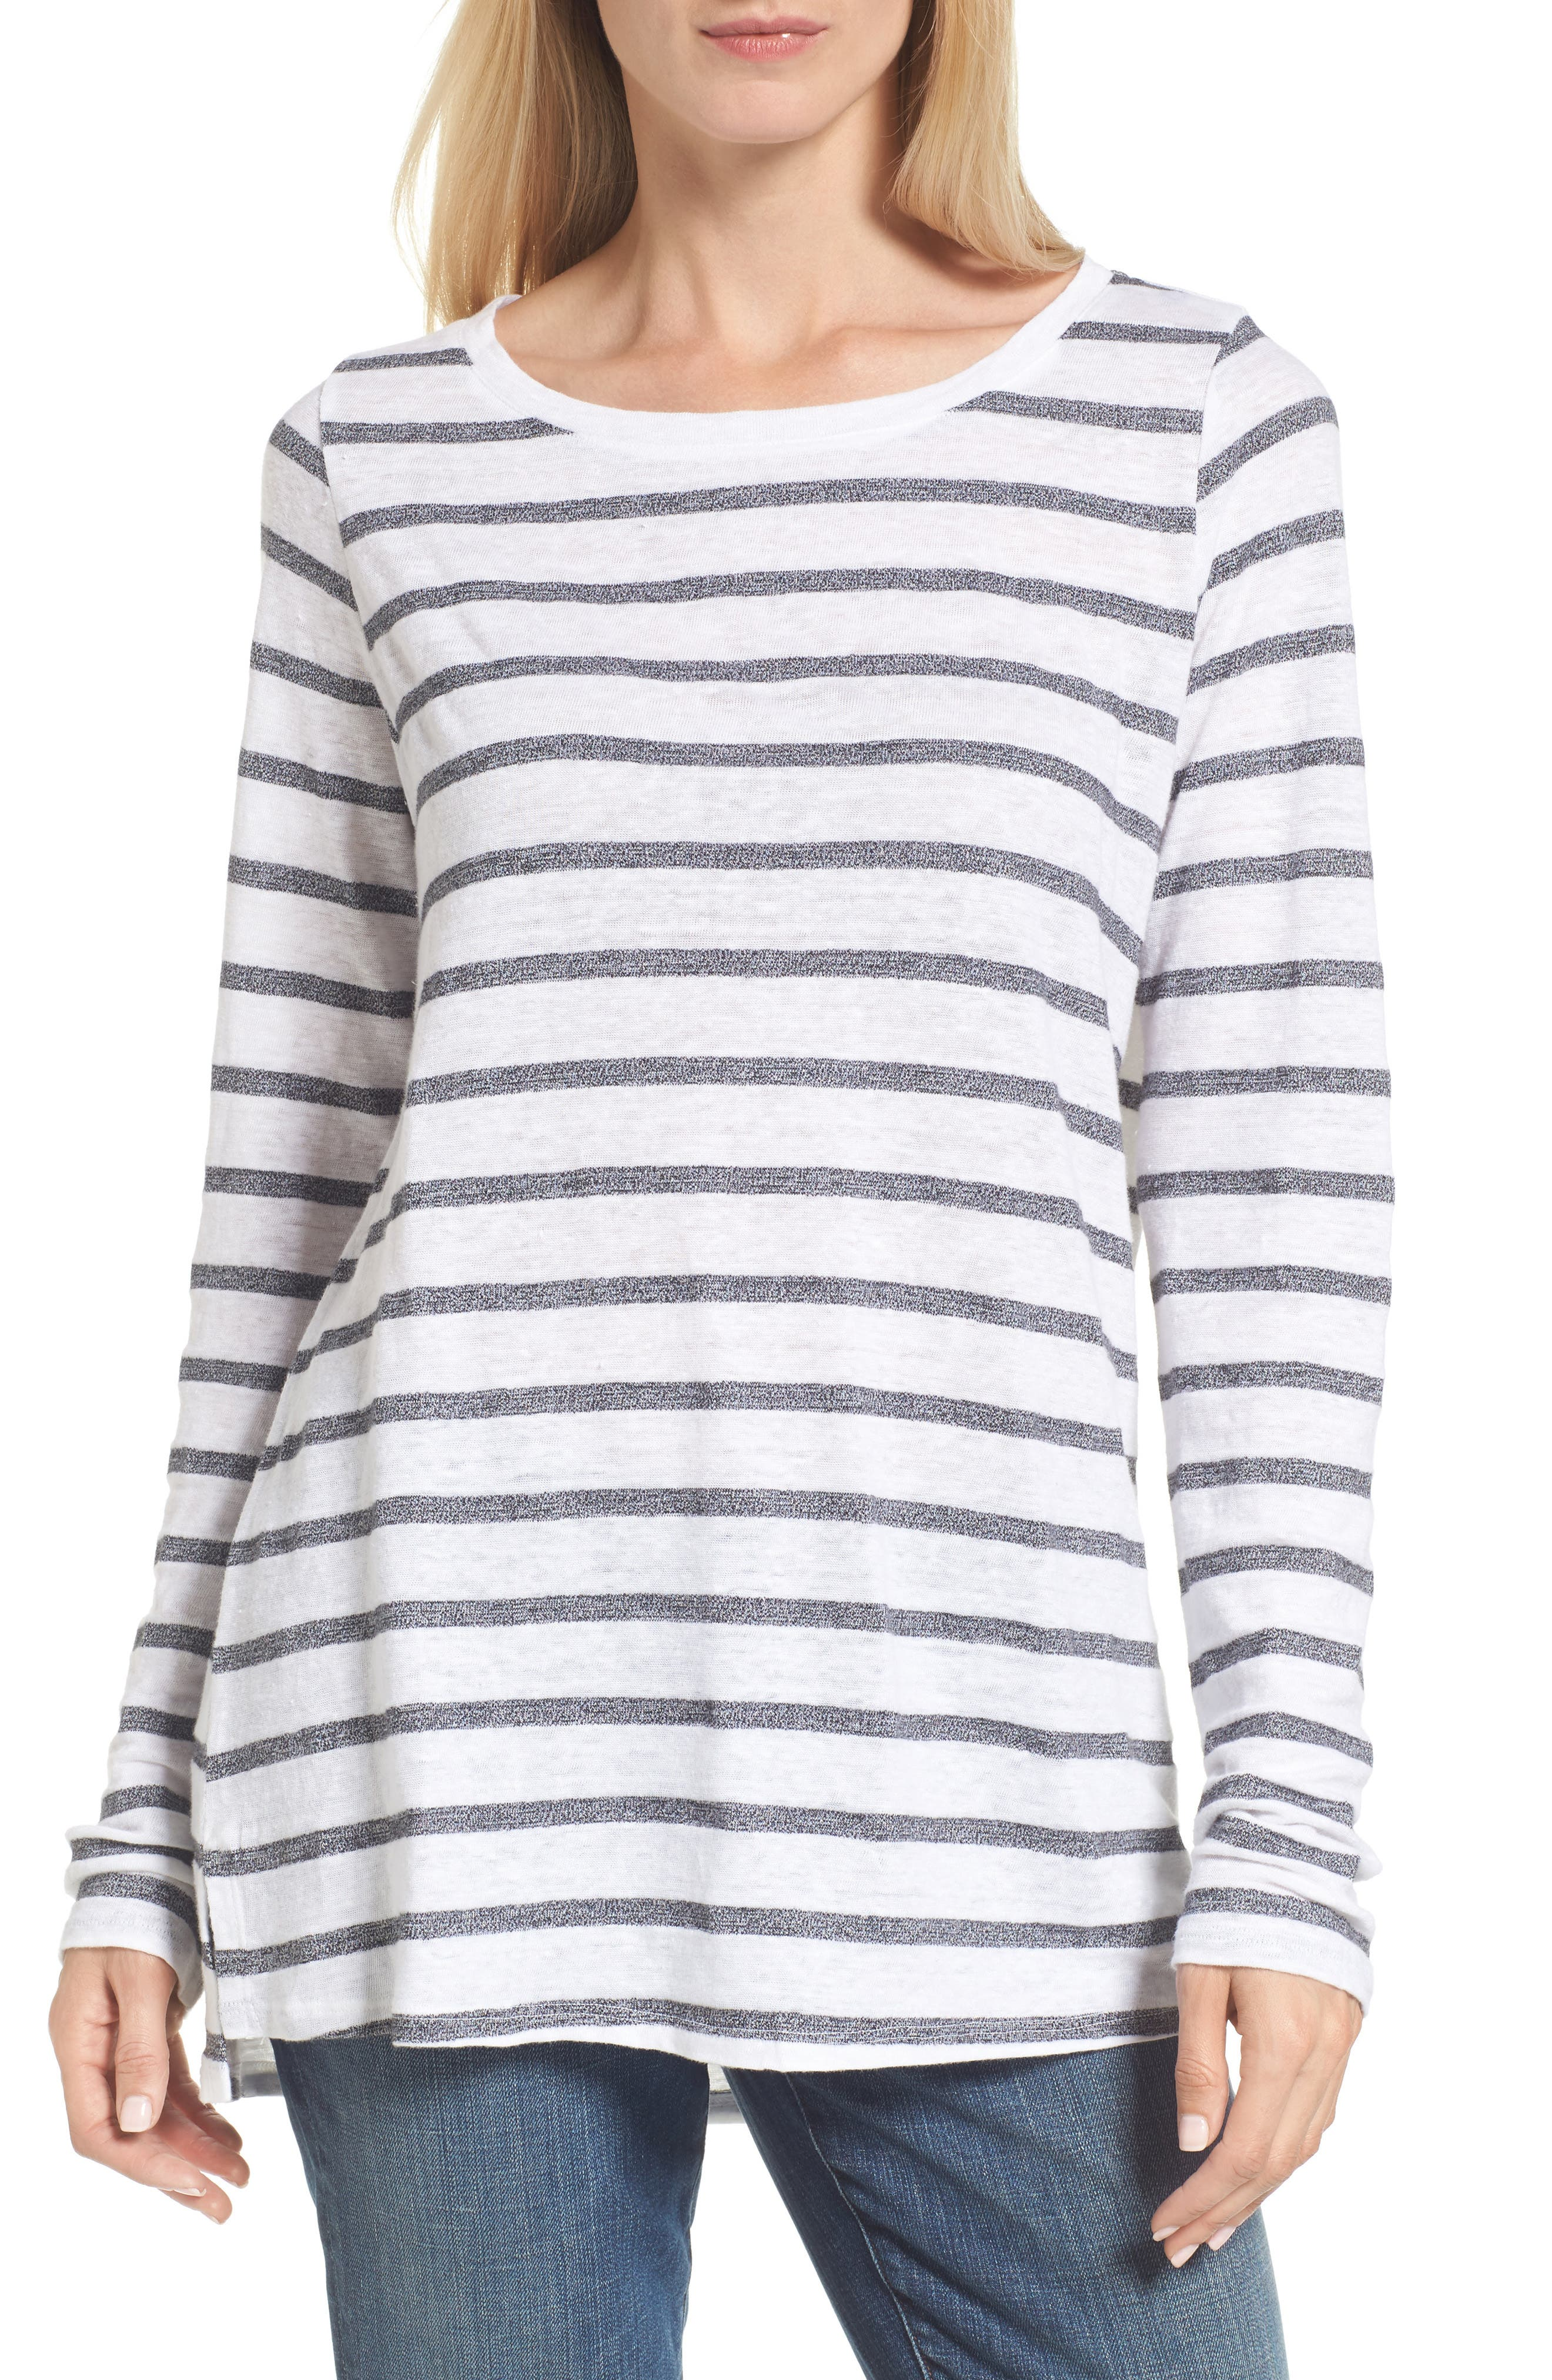 Alternate Image 1 Selected - Eileen Fisher Stripe Linen Blend Ballet Neck Top